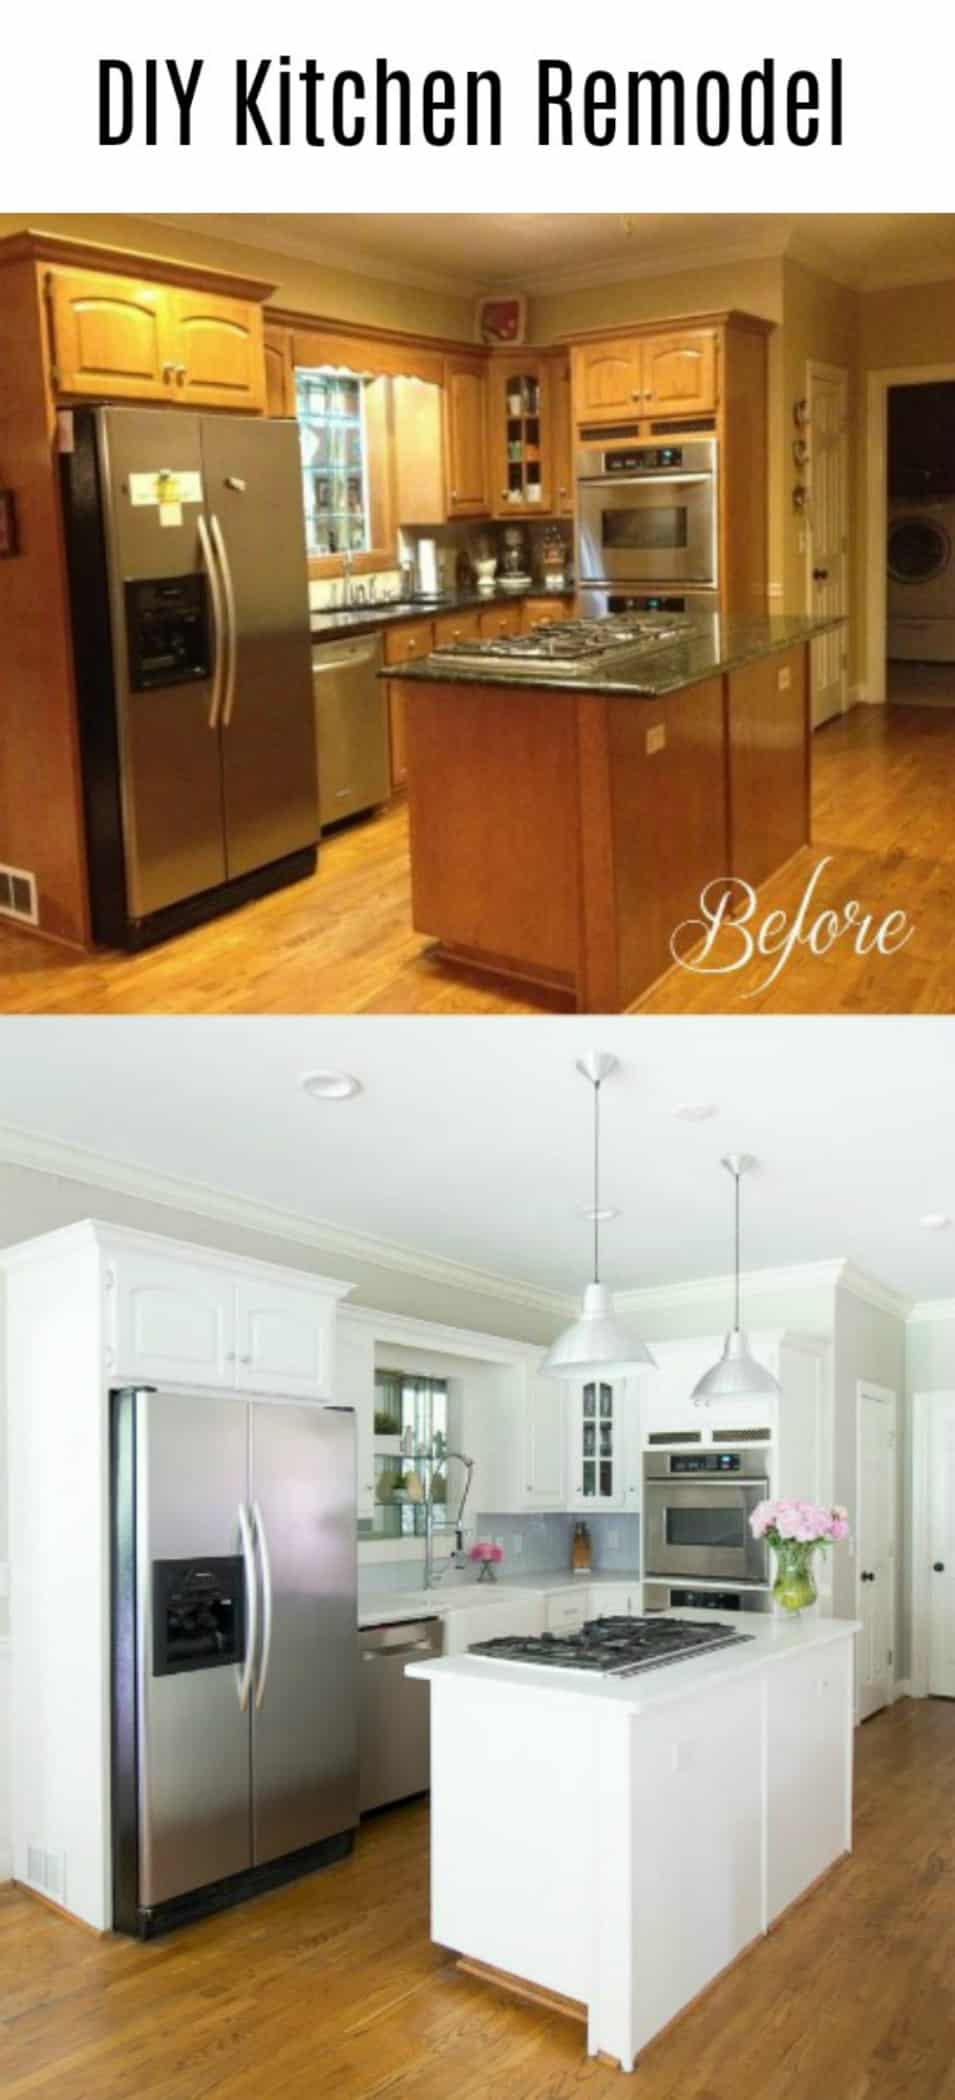 Diy kitchen remodel reveal savvy apron for Cost to update kitchen cabinets and countertops